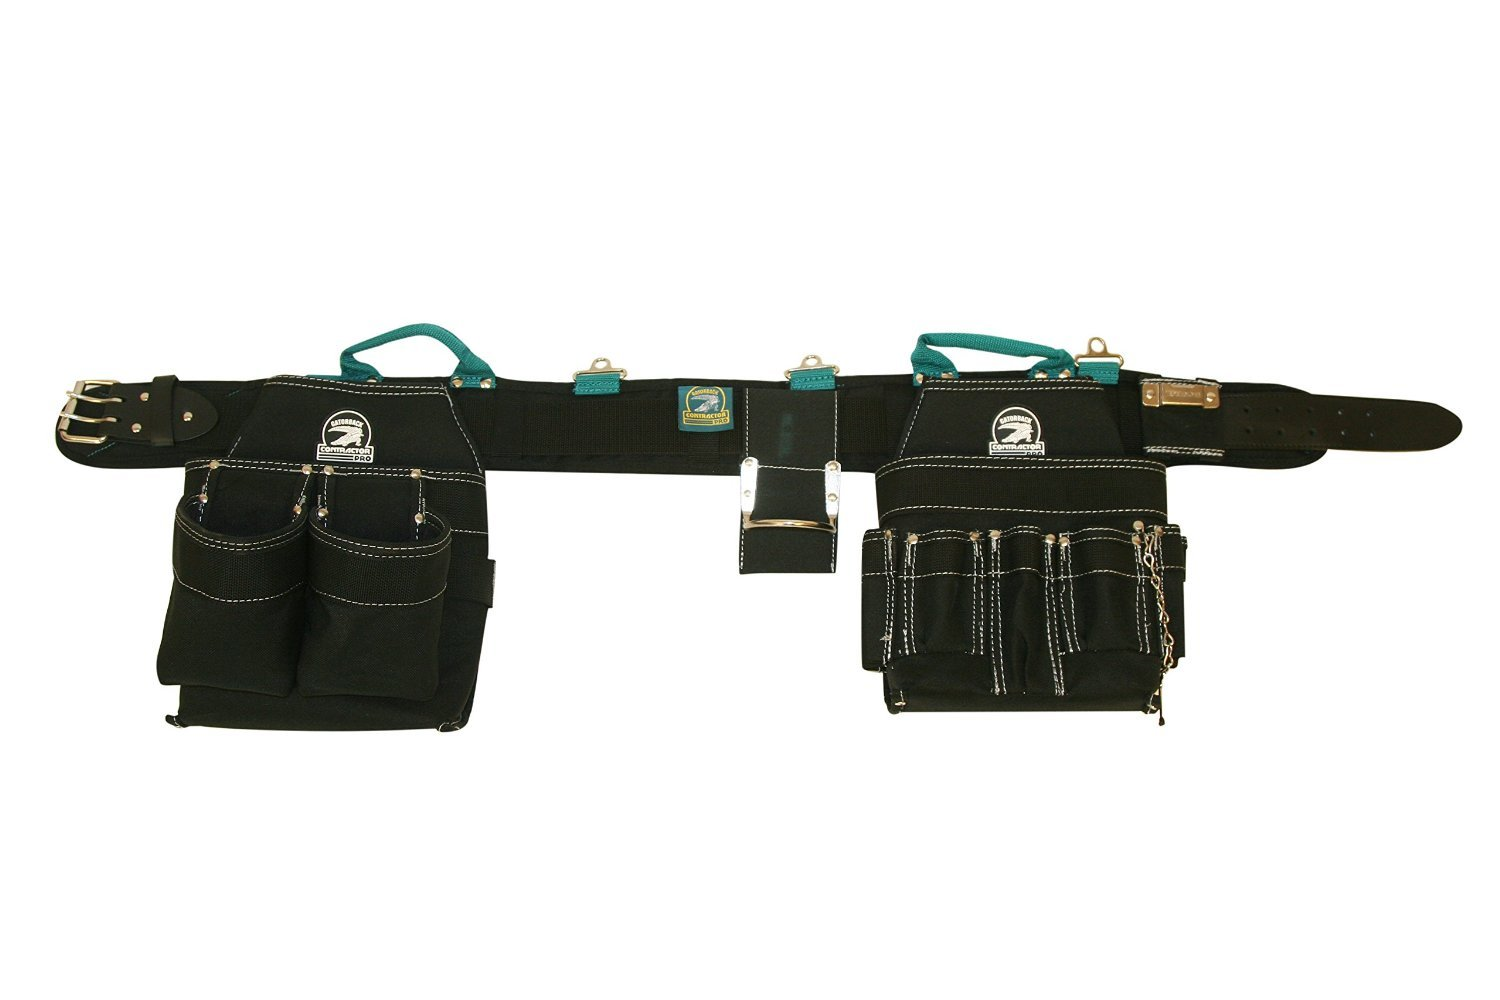 Contractor Pro Professional Electrician's Complete Package Plus+ (Tool Belt, Bucket Tote, Suspenders, and Gloves) 3XL 50-55 Inch Waist for Electricians, HVAC, Carpenters, Drywallers by Contractor Pro (Image #2)